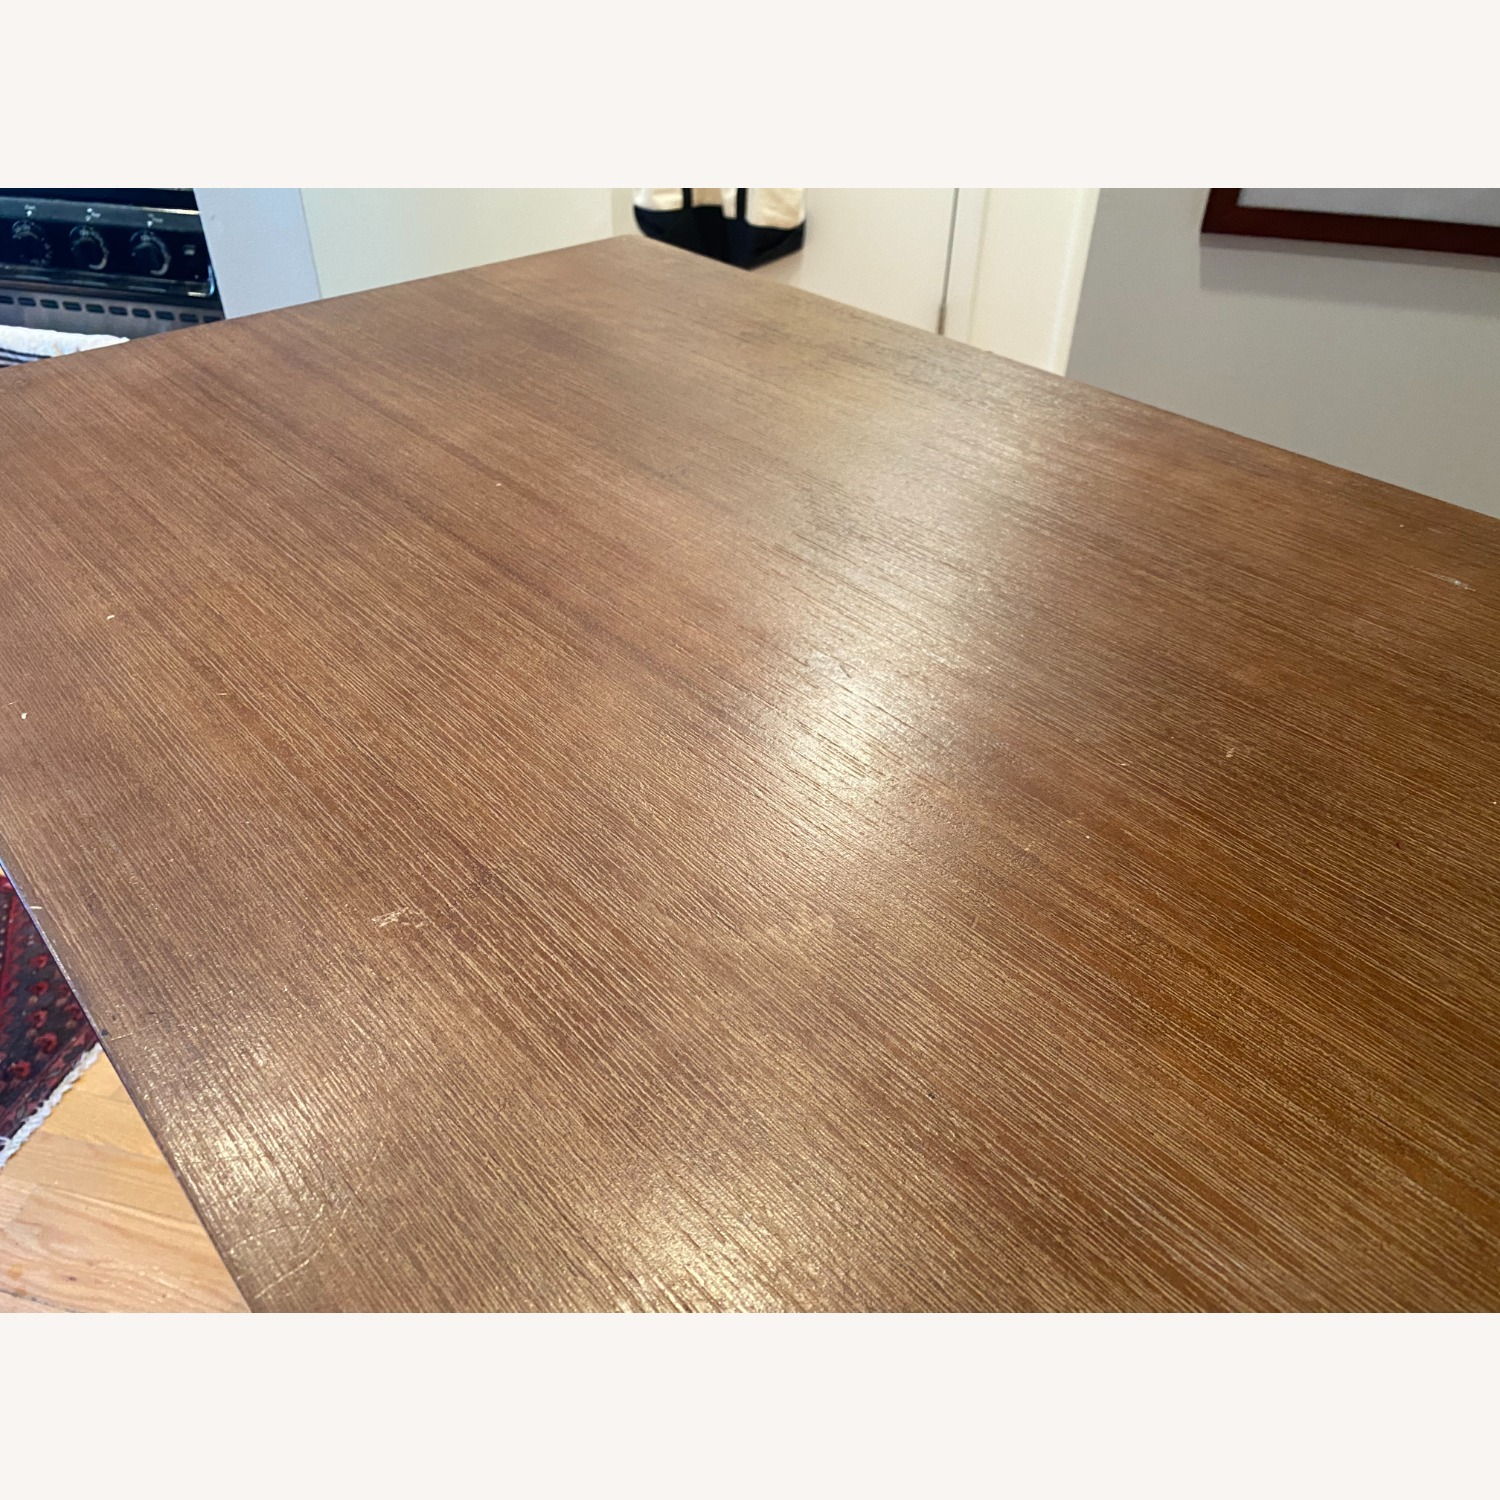 Wayfair Counter Height Rubberwood Solid Wood Dining Table - image-2